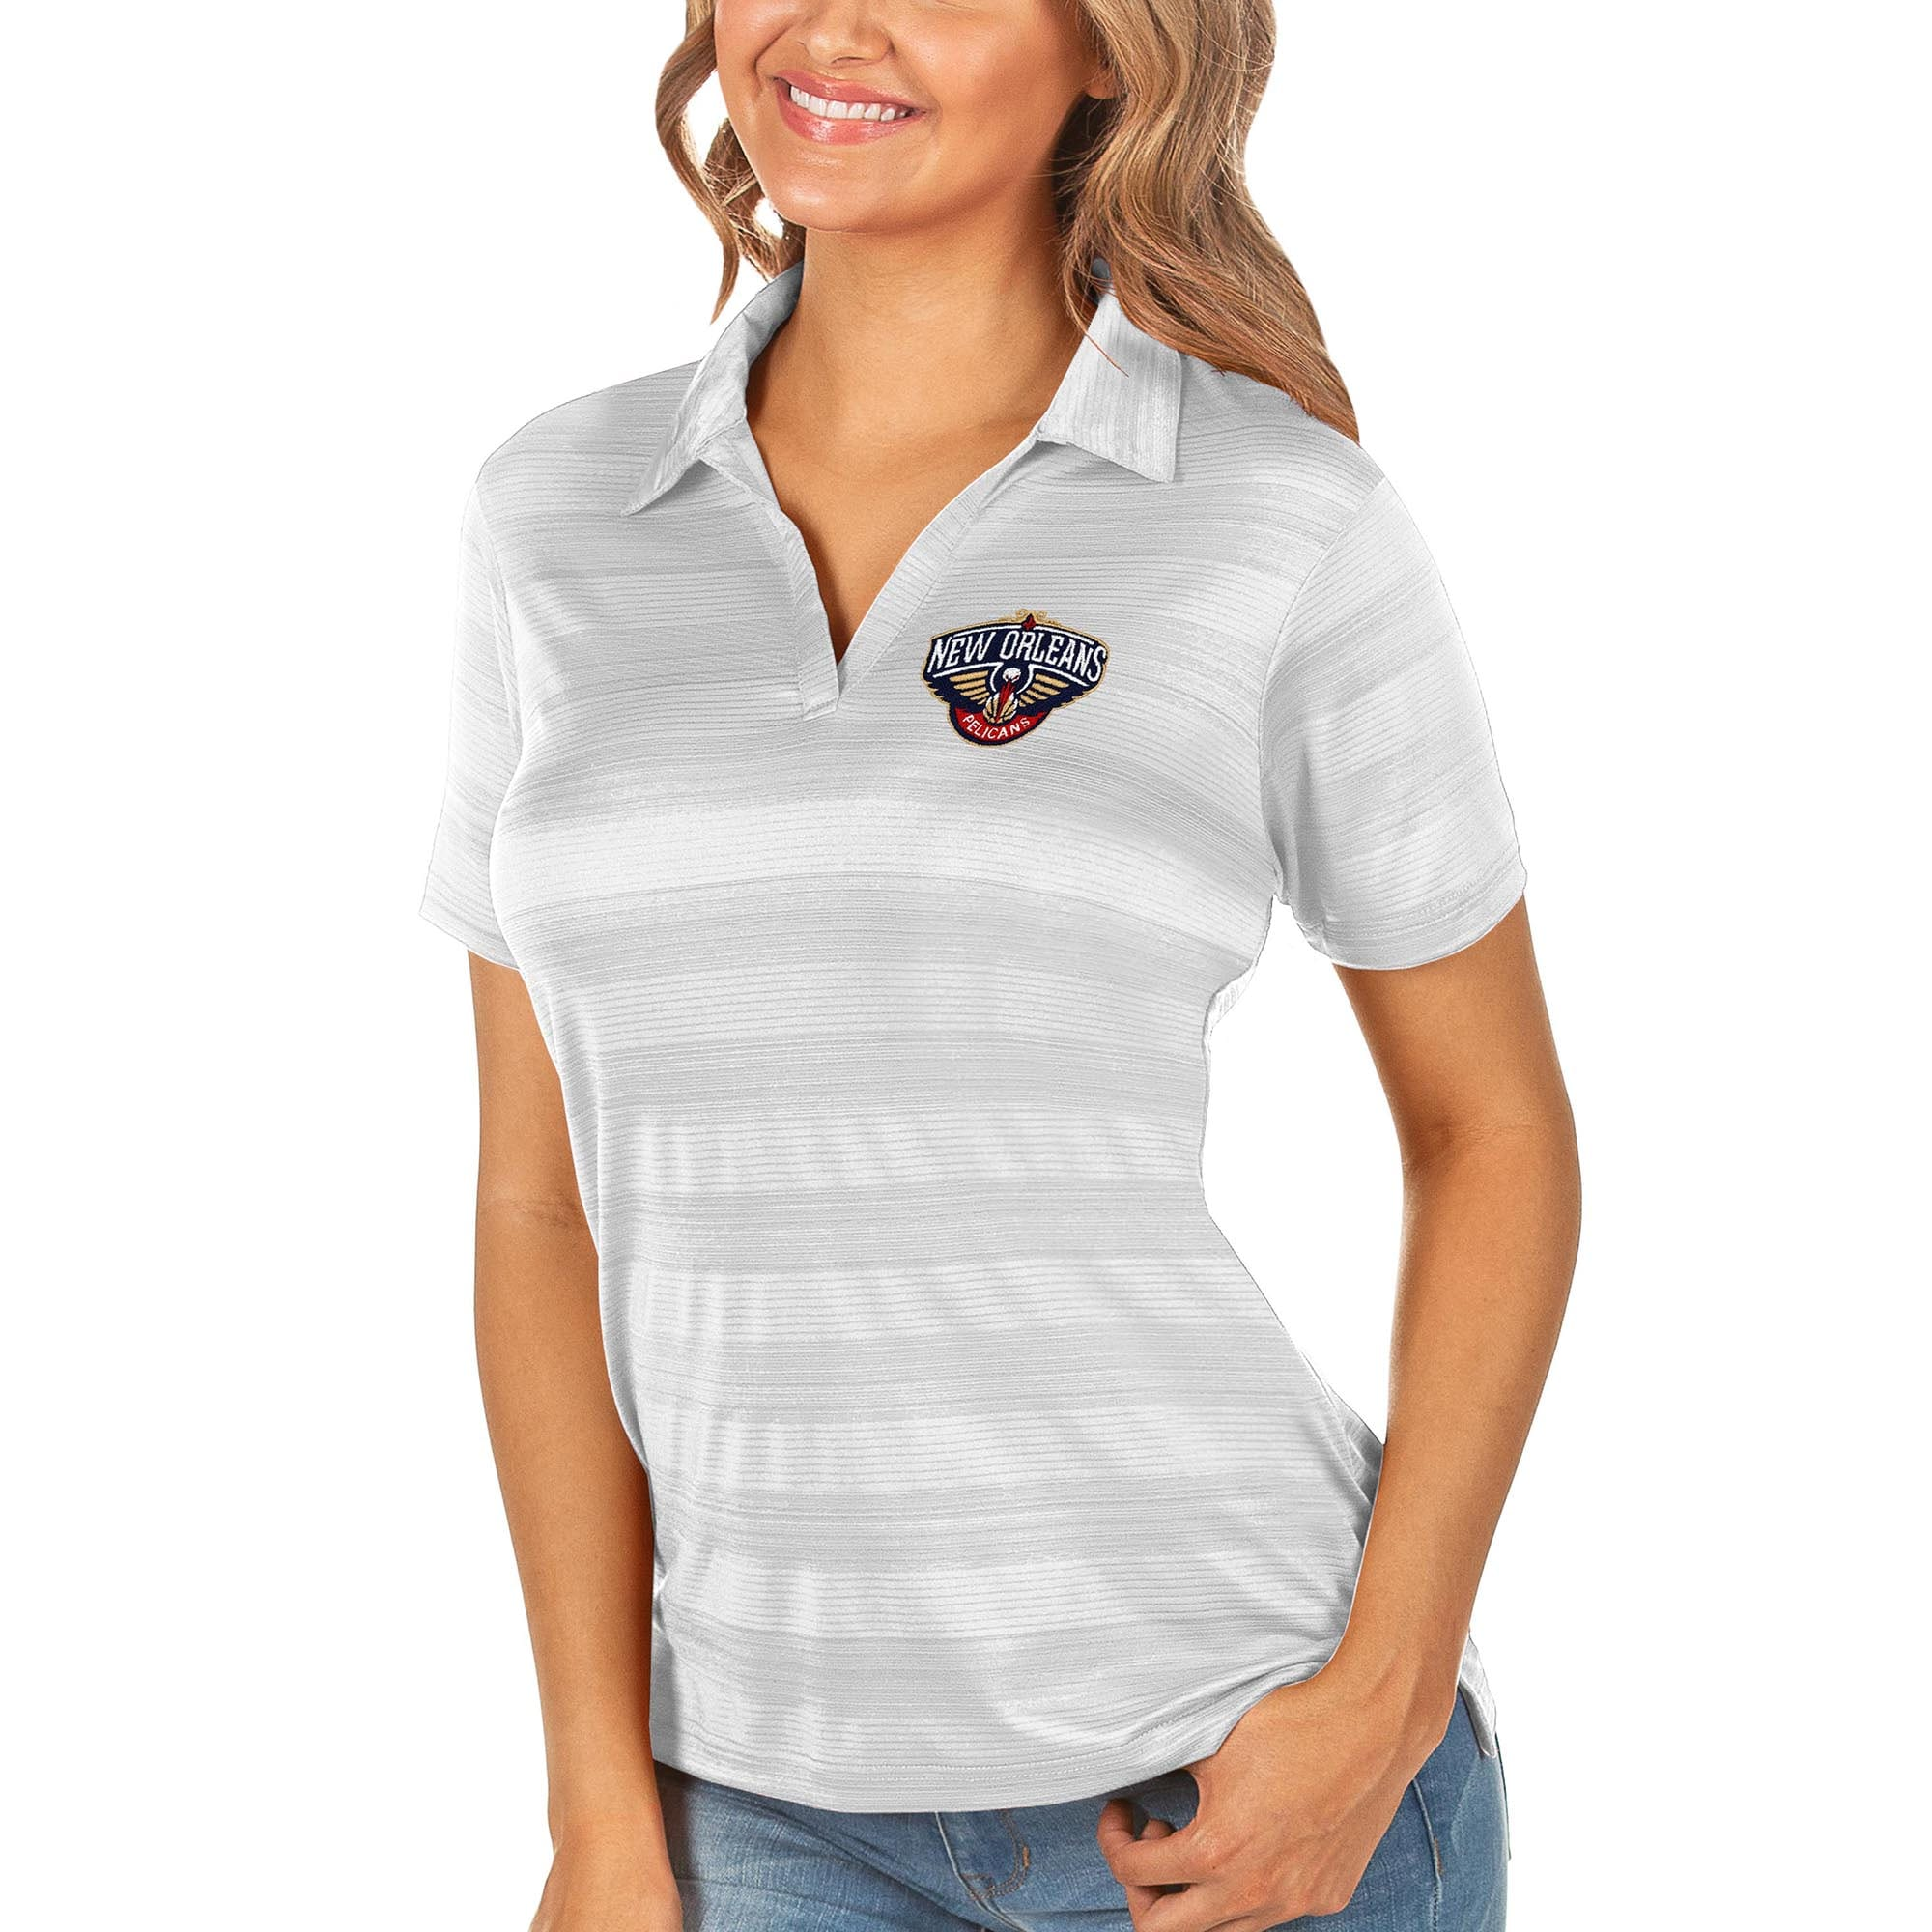 New Orleans Pelicans Antigua Women's Compass Polo - White